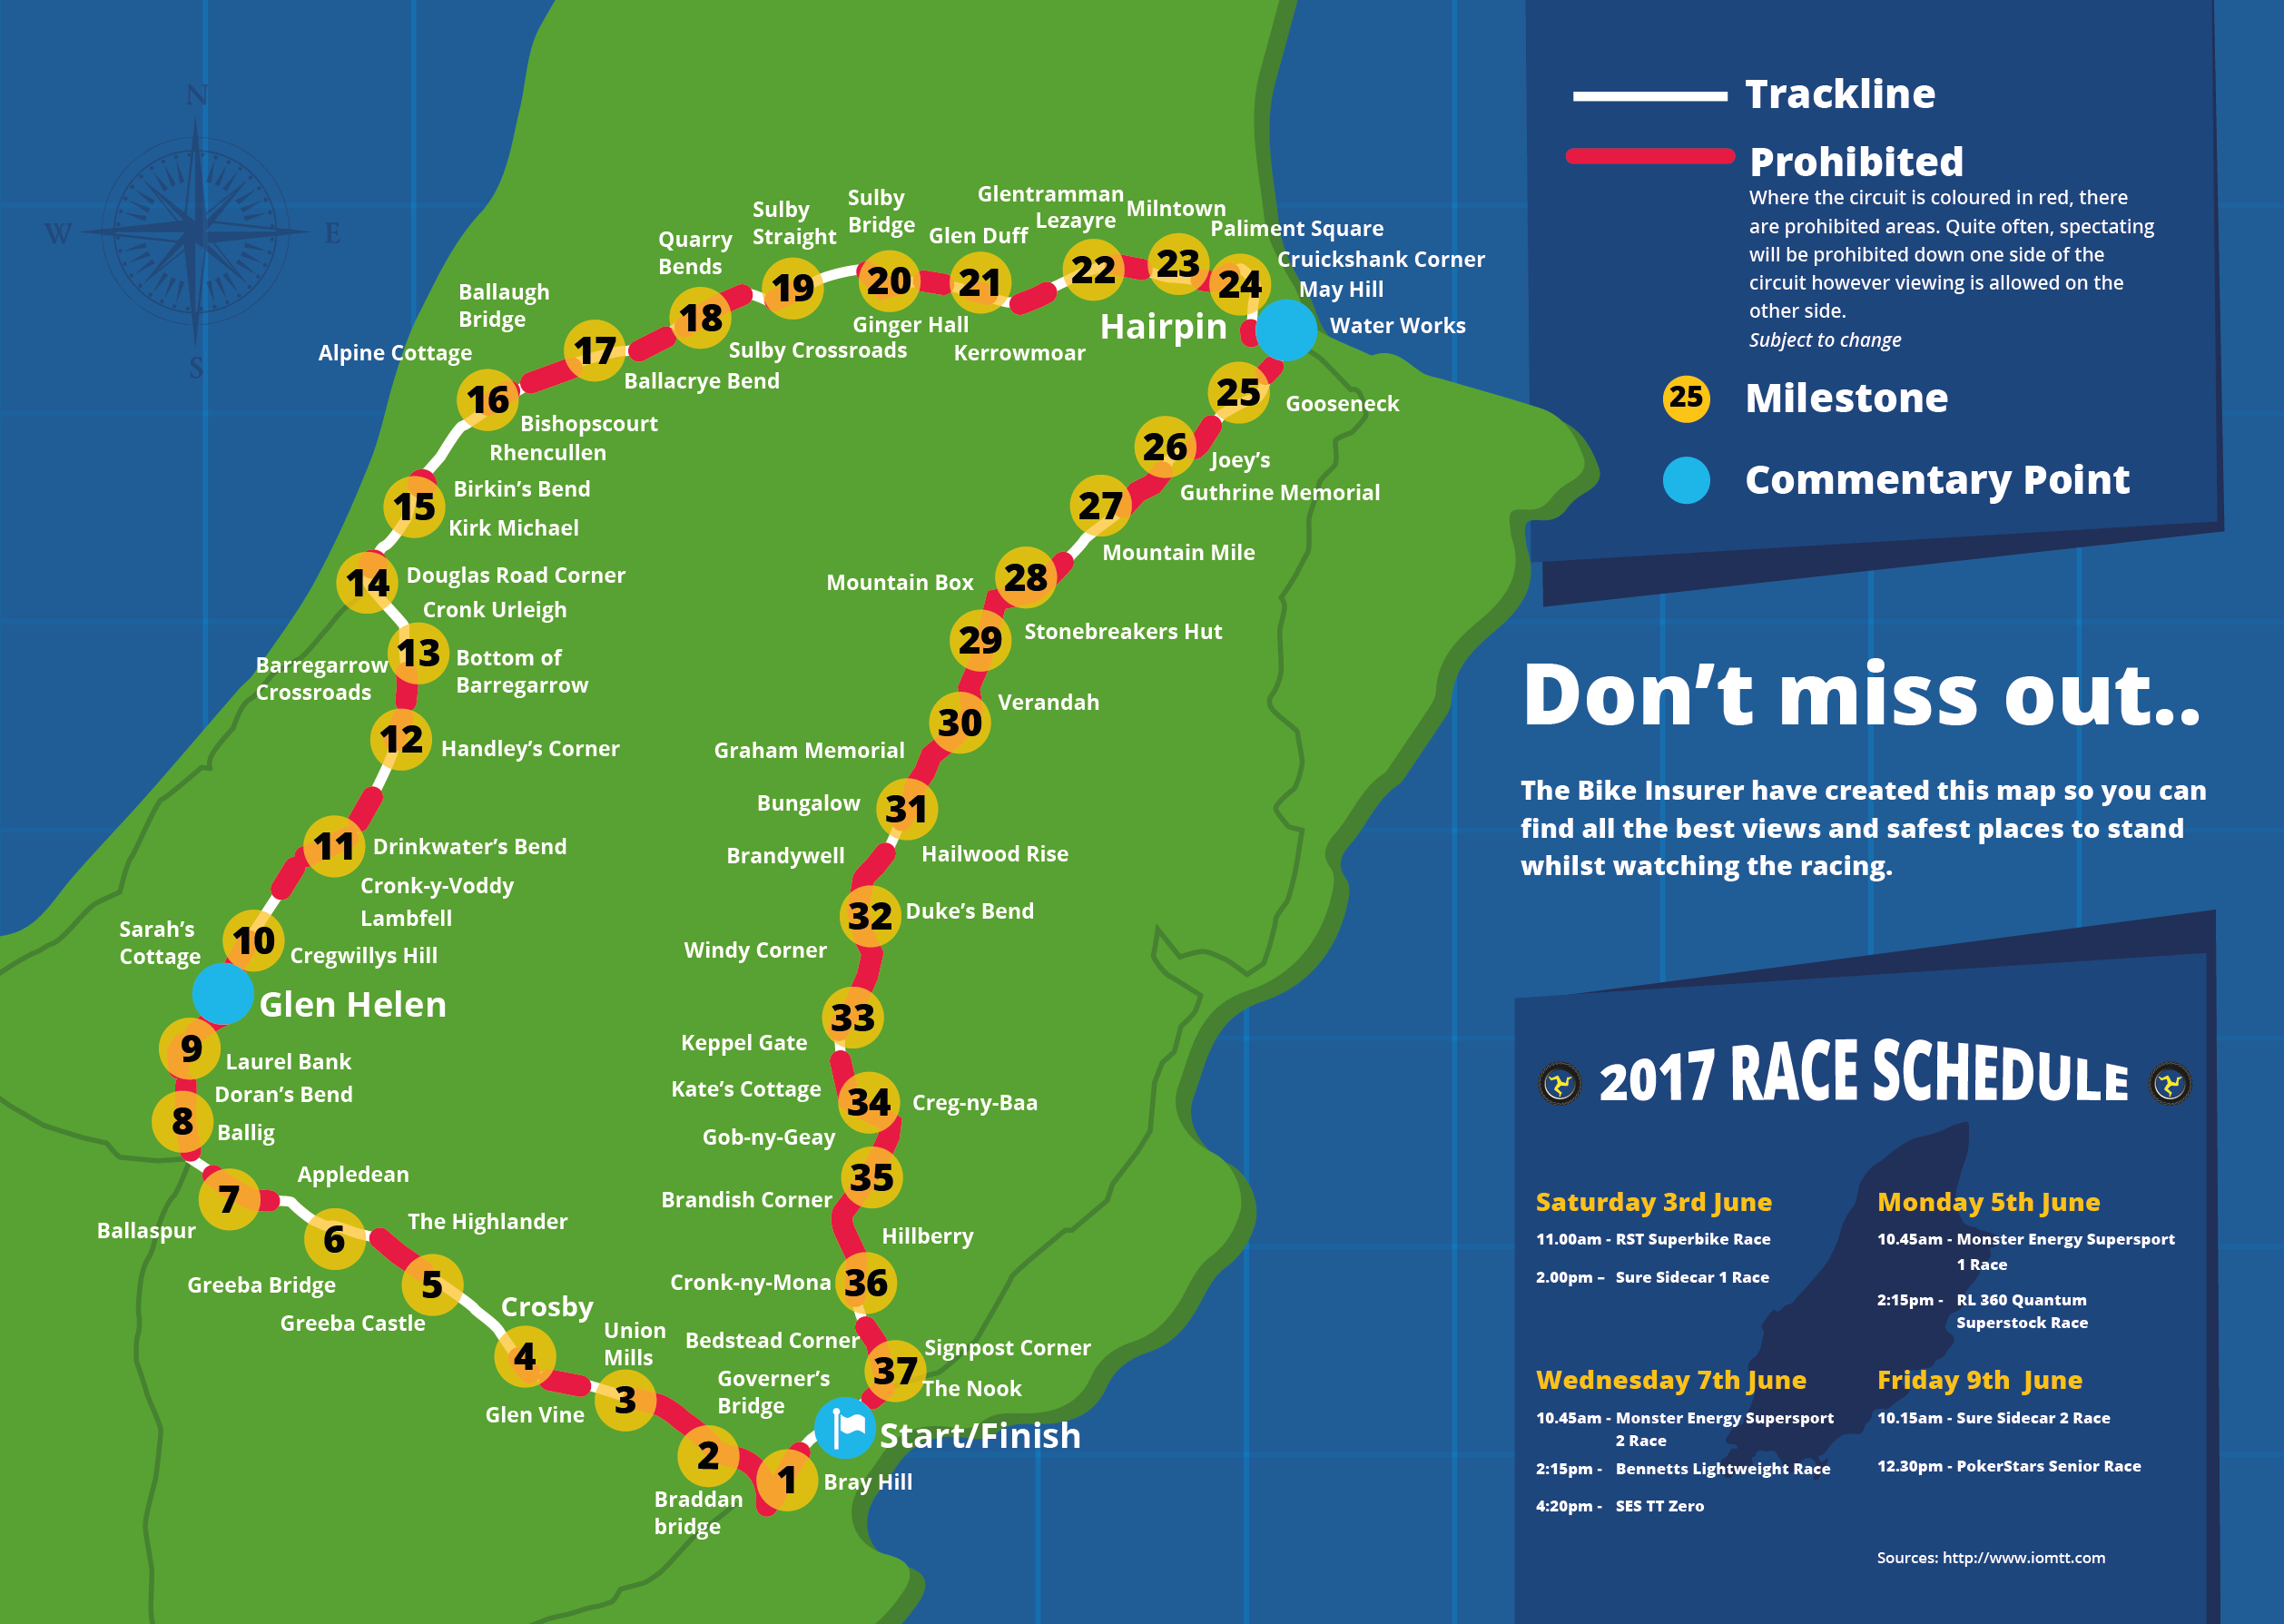 Isle Of Man TT Circuit Map And Guide The Bike Insurer - Isle of man map